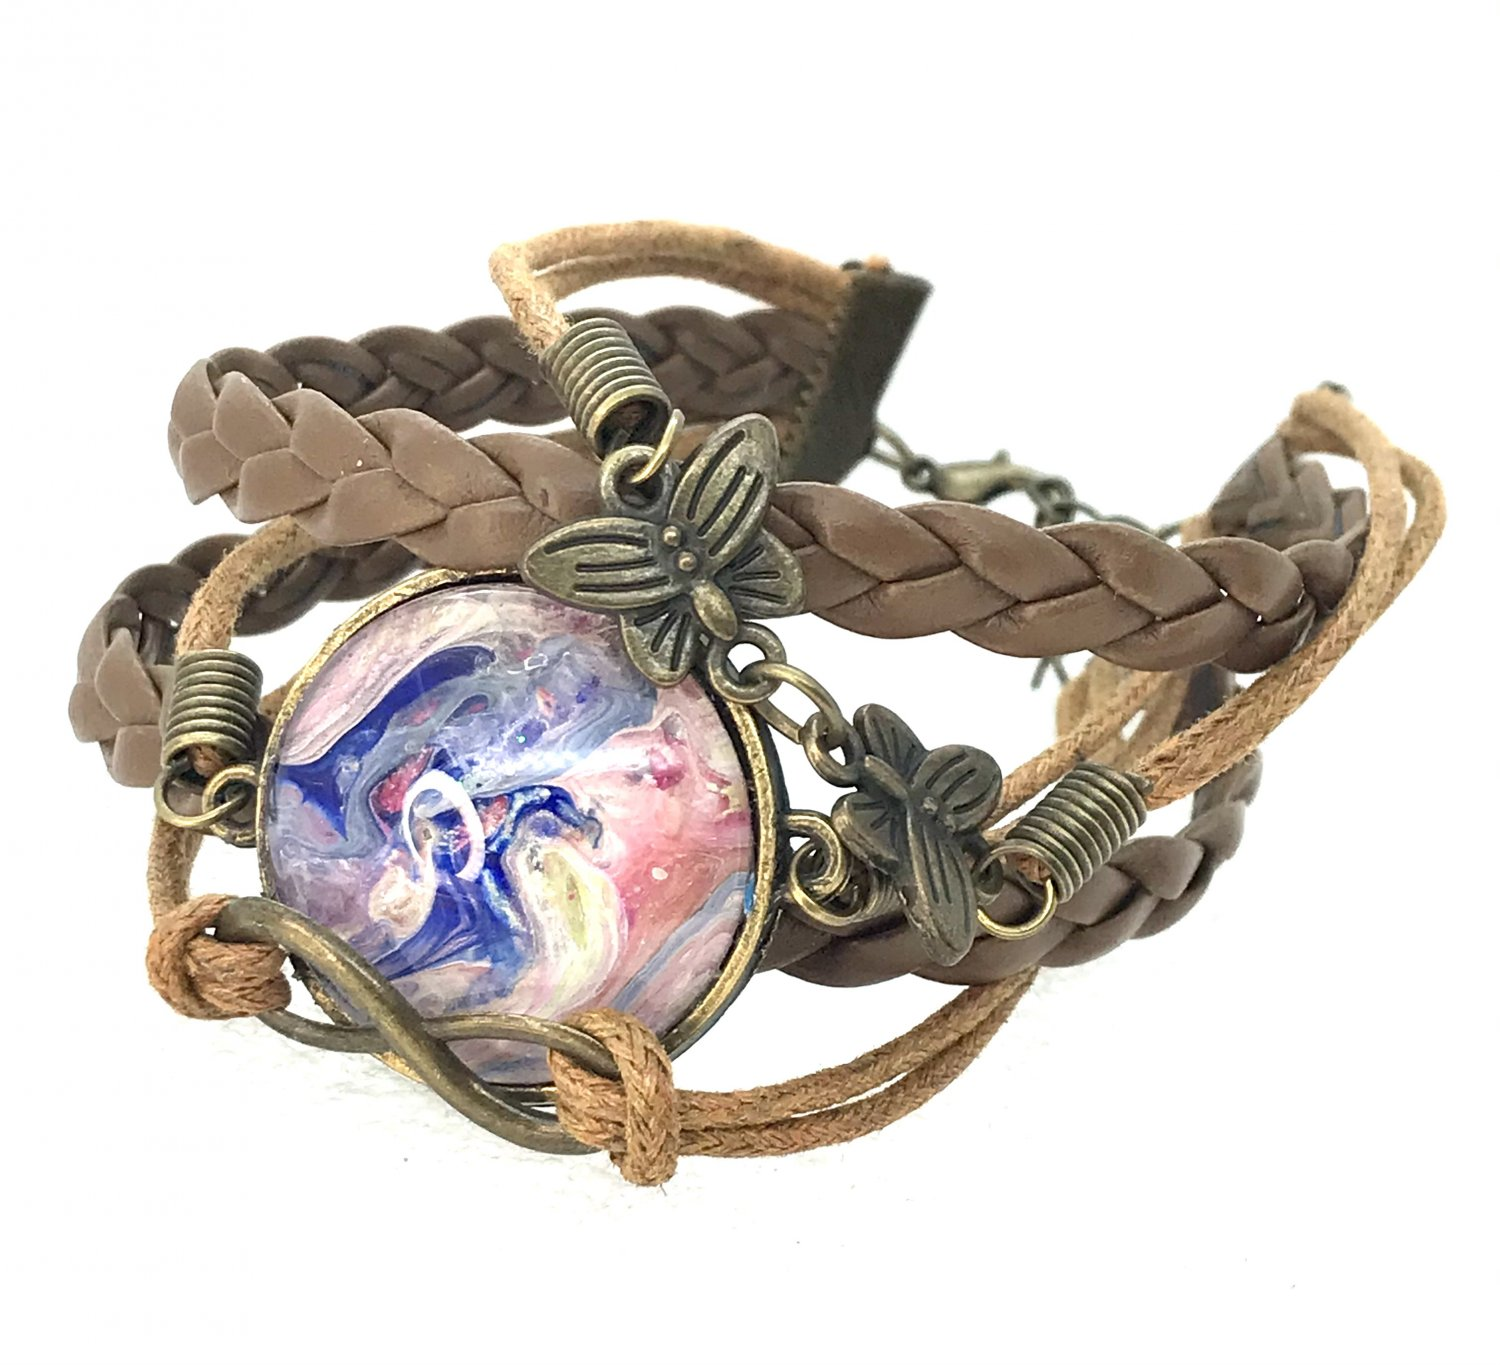 Bracelet leather with charms handmade dome 25mm lobster clasp